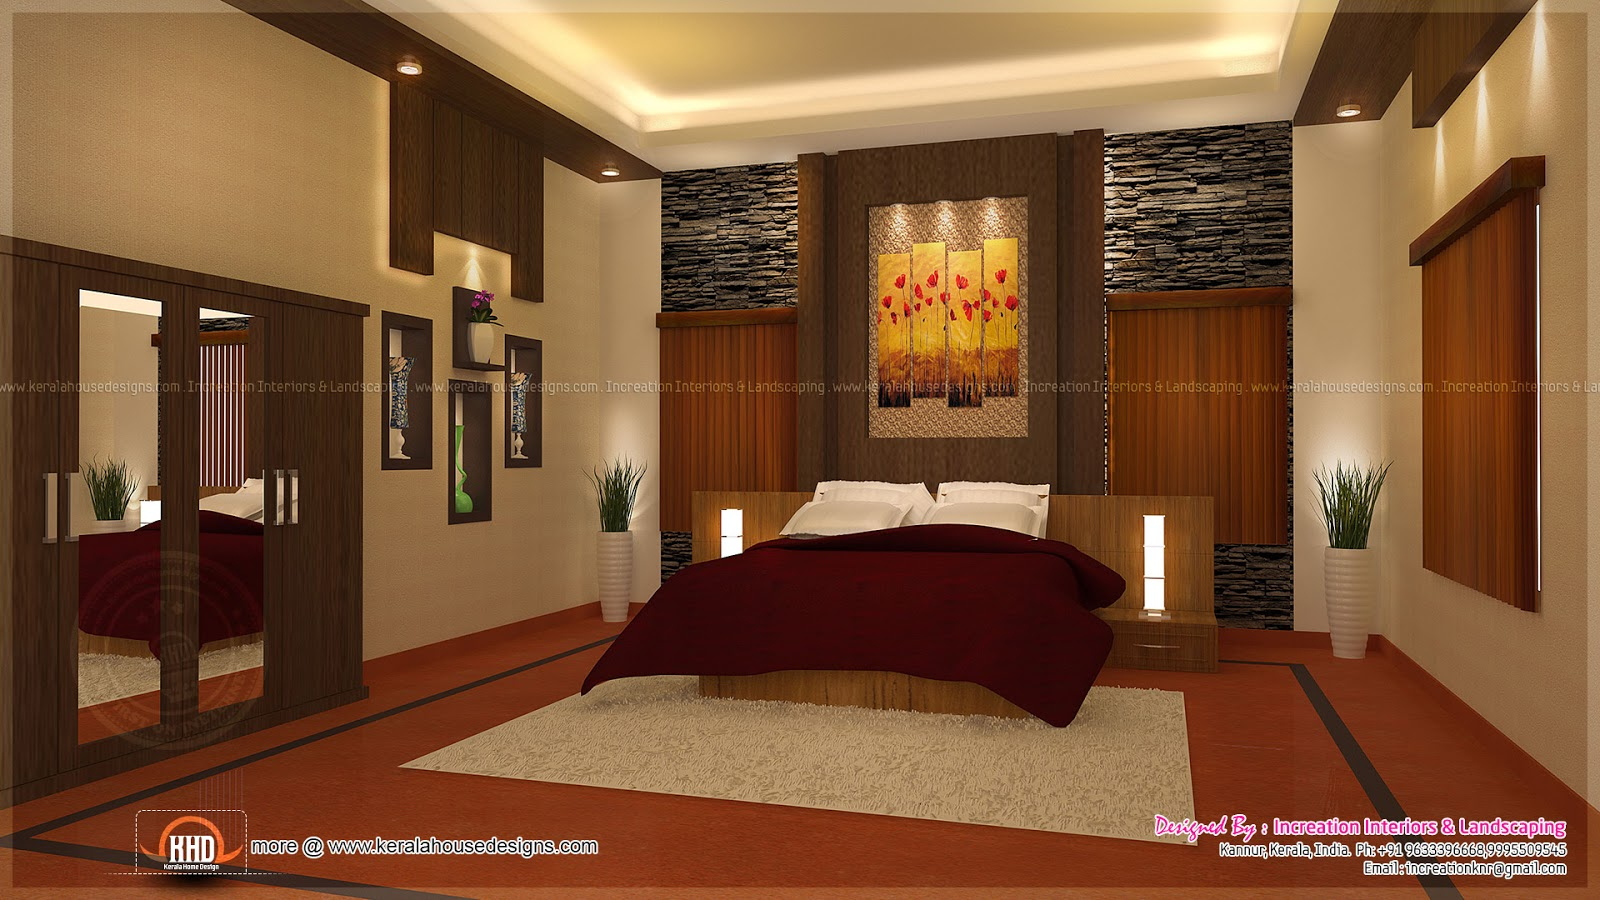 House interior ideas in 3d rendering kerala home design Home interior ideas